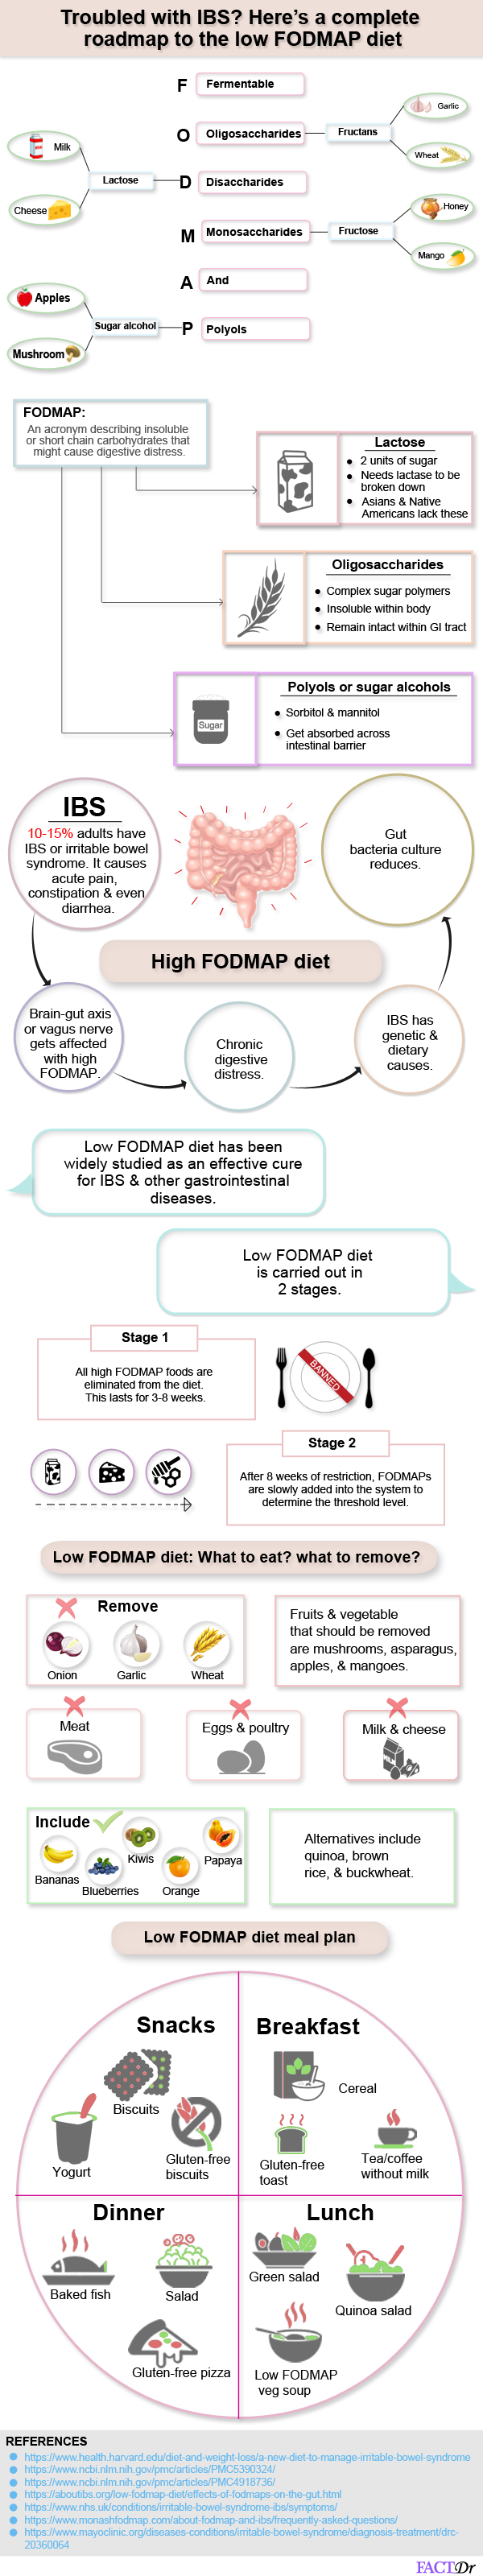 Fodmap-diet-infographic